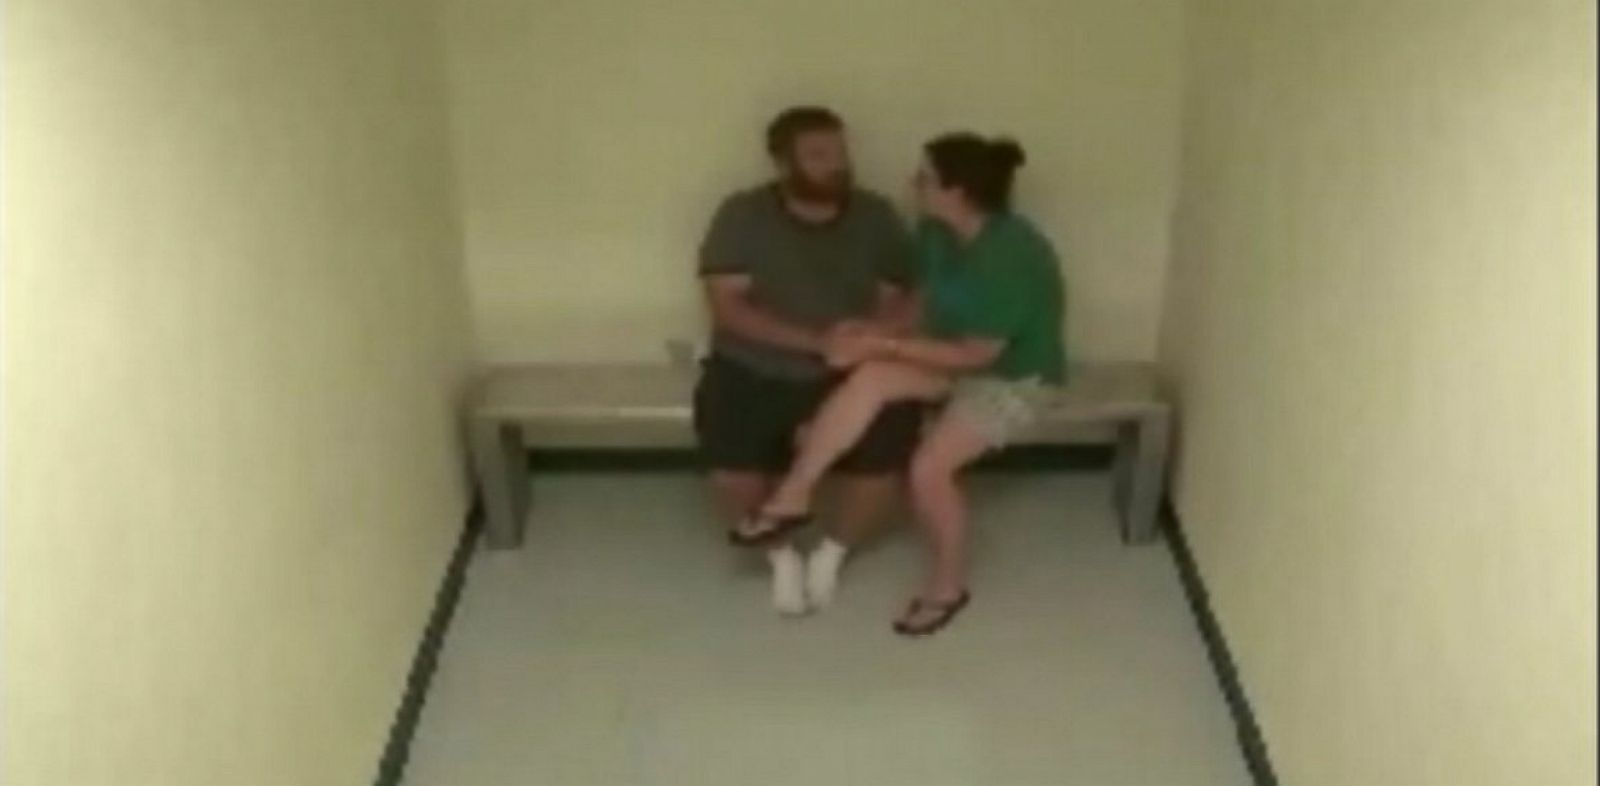 PHOTO: Joshua and Sharyn Hakken,seen in a prison surveillance video.